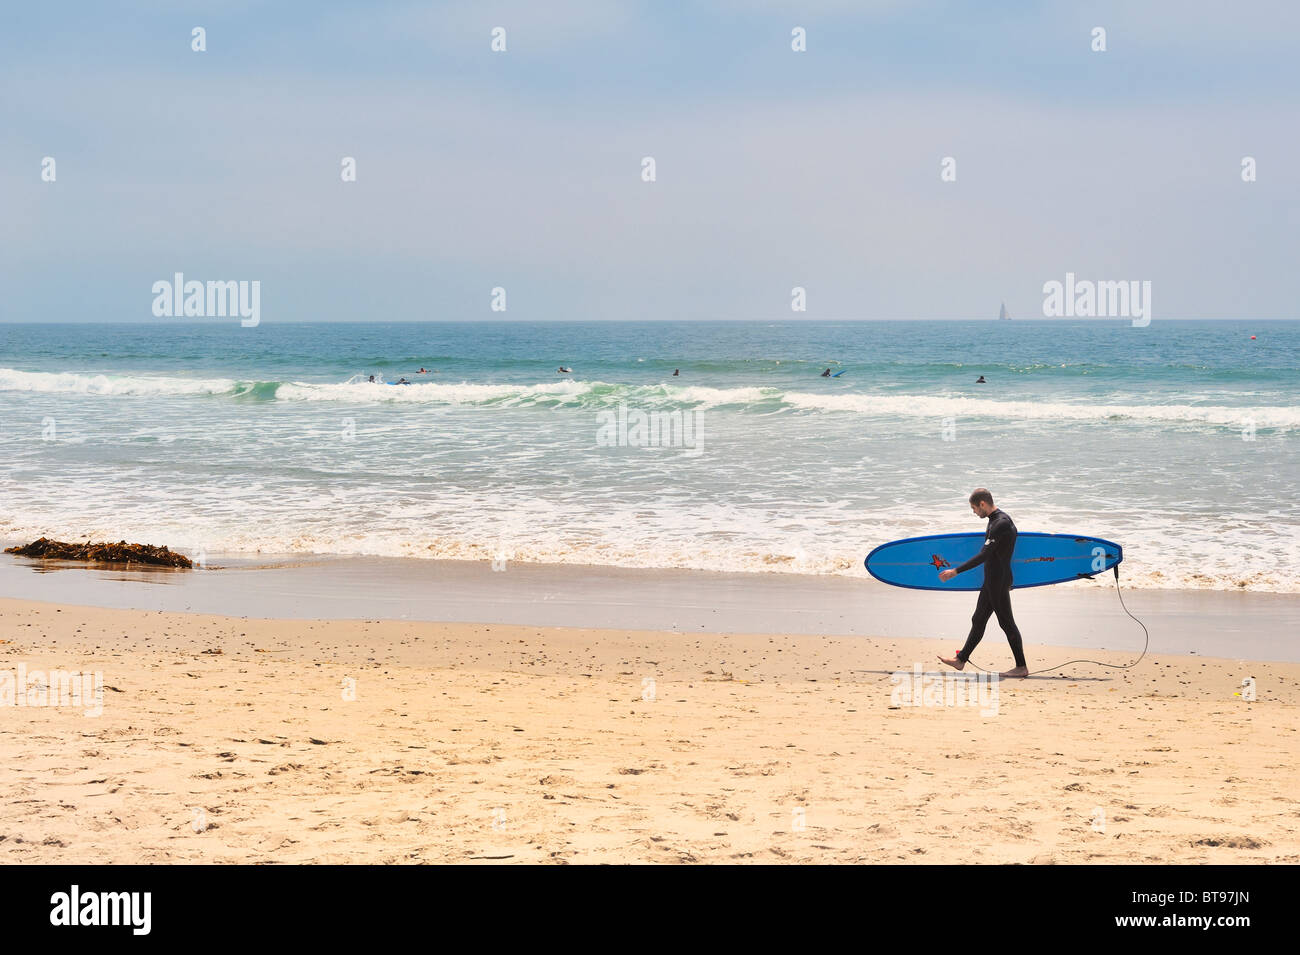 Surfing USA : Male surfer profile view walks on Venice Beach, Los Angeles, California, wearing wetsuit carrying Stock Photo